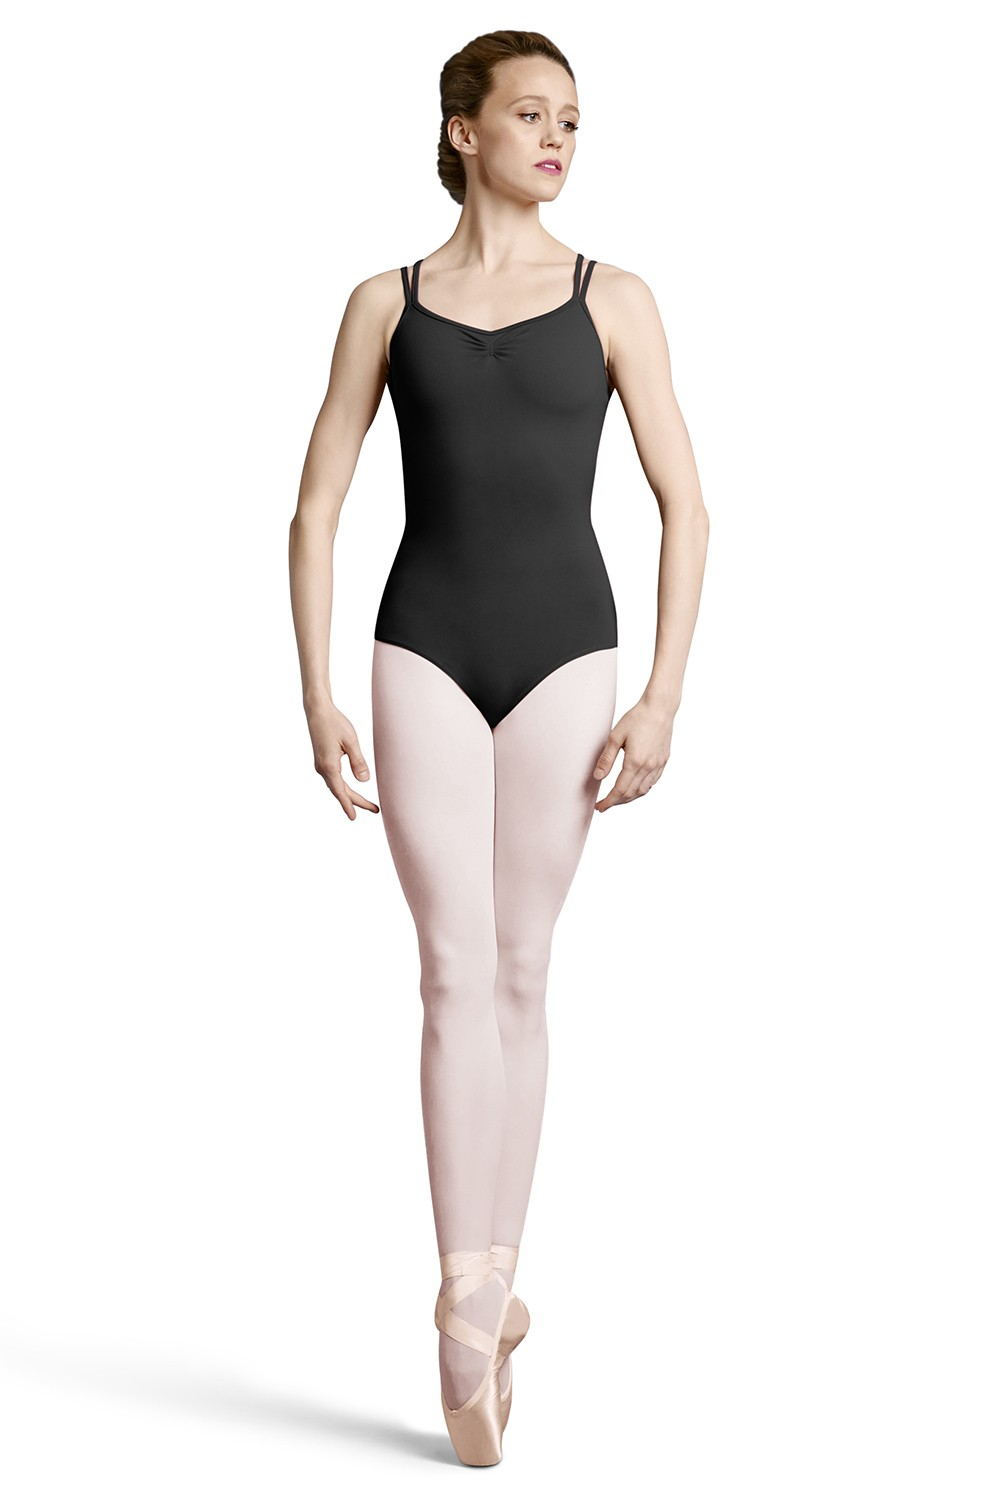 Clidna   Womens Camisole Leotards